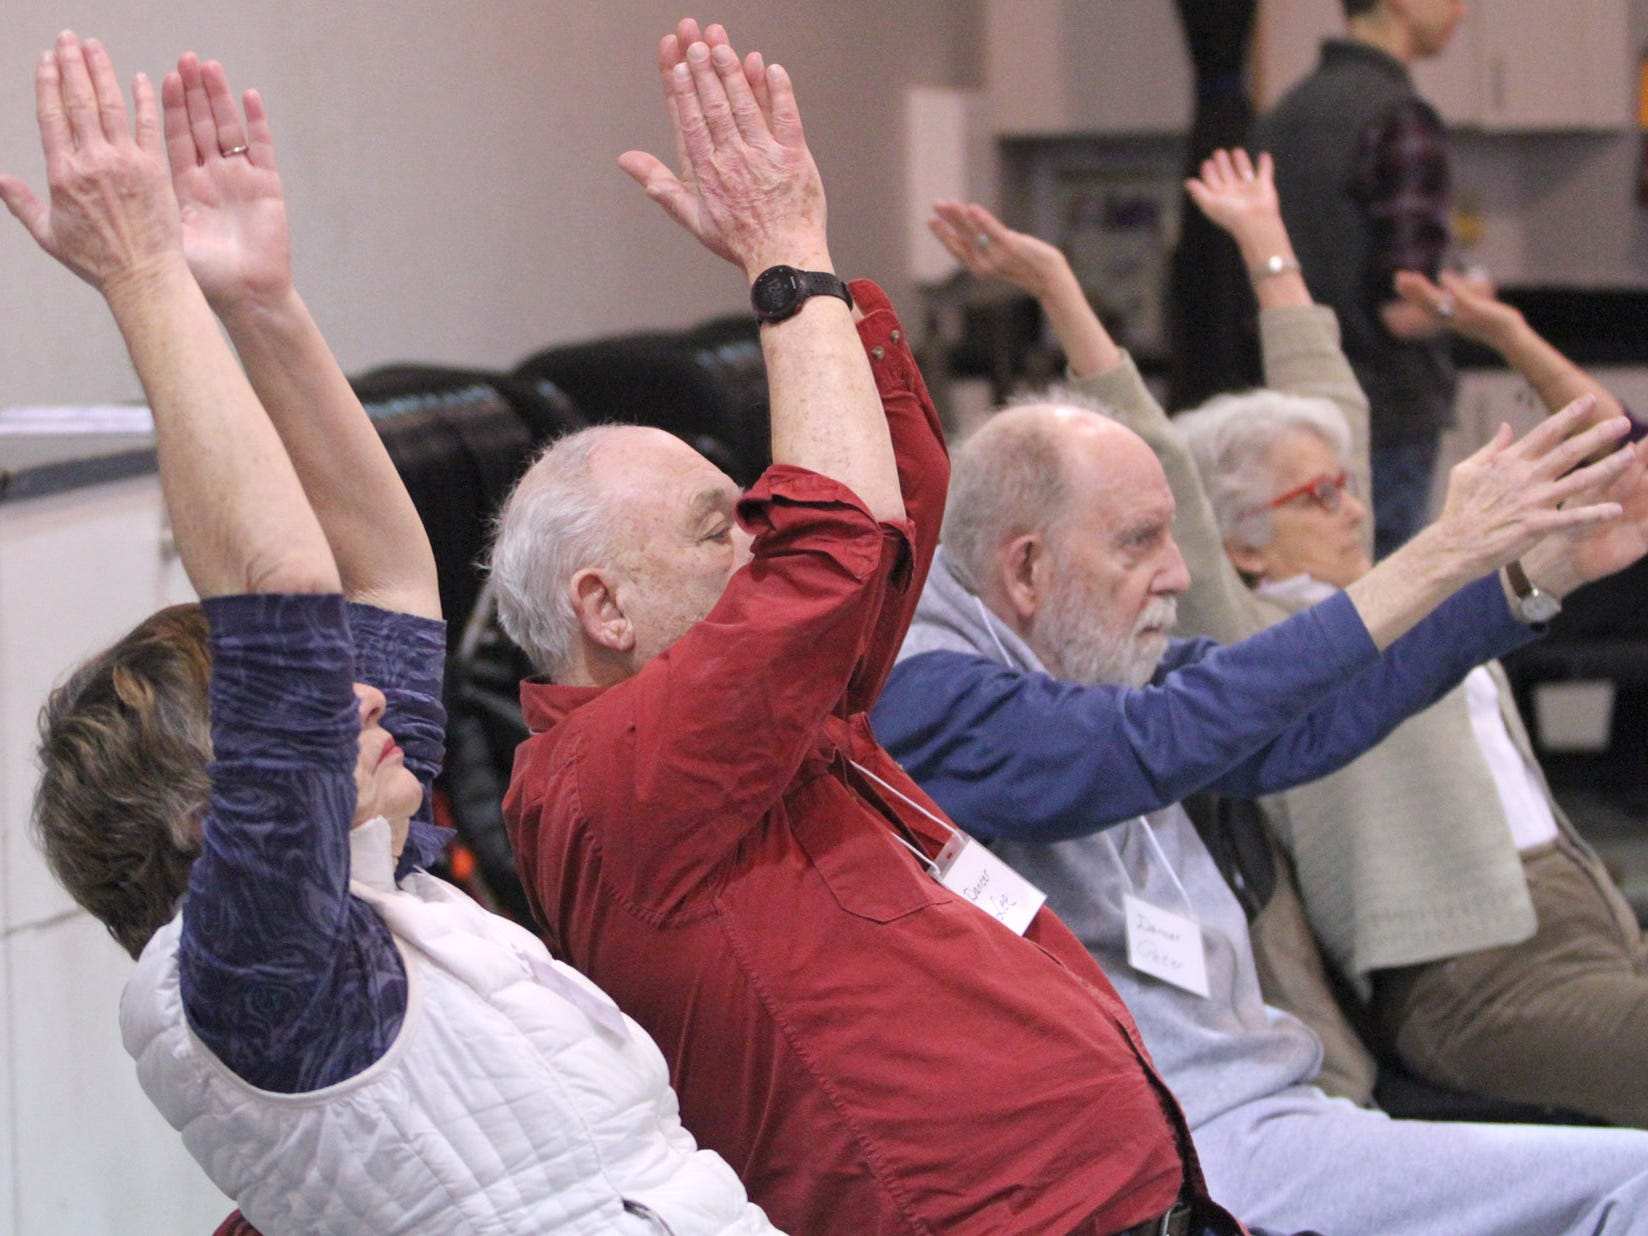 Participants in the Dance for Parkinson's class exercise from their chairs at the beginning of the class held at the senior center on Bainbridge Island.